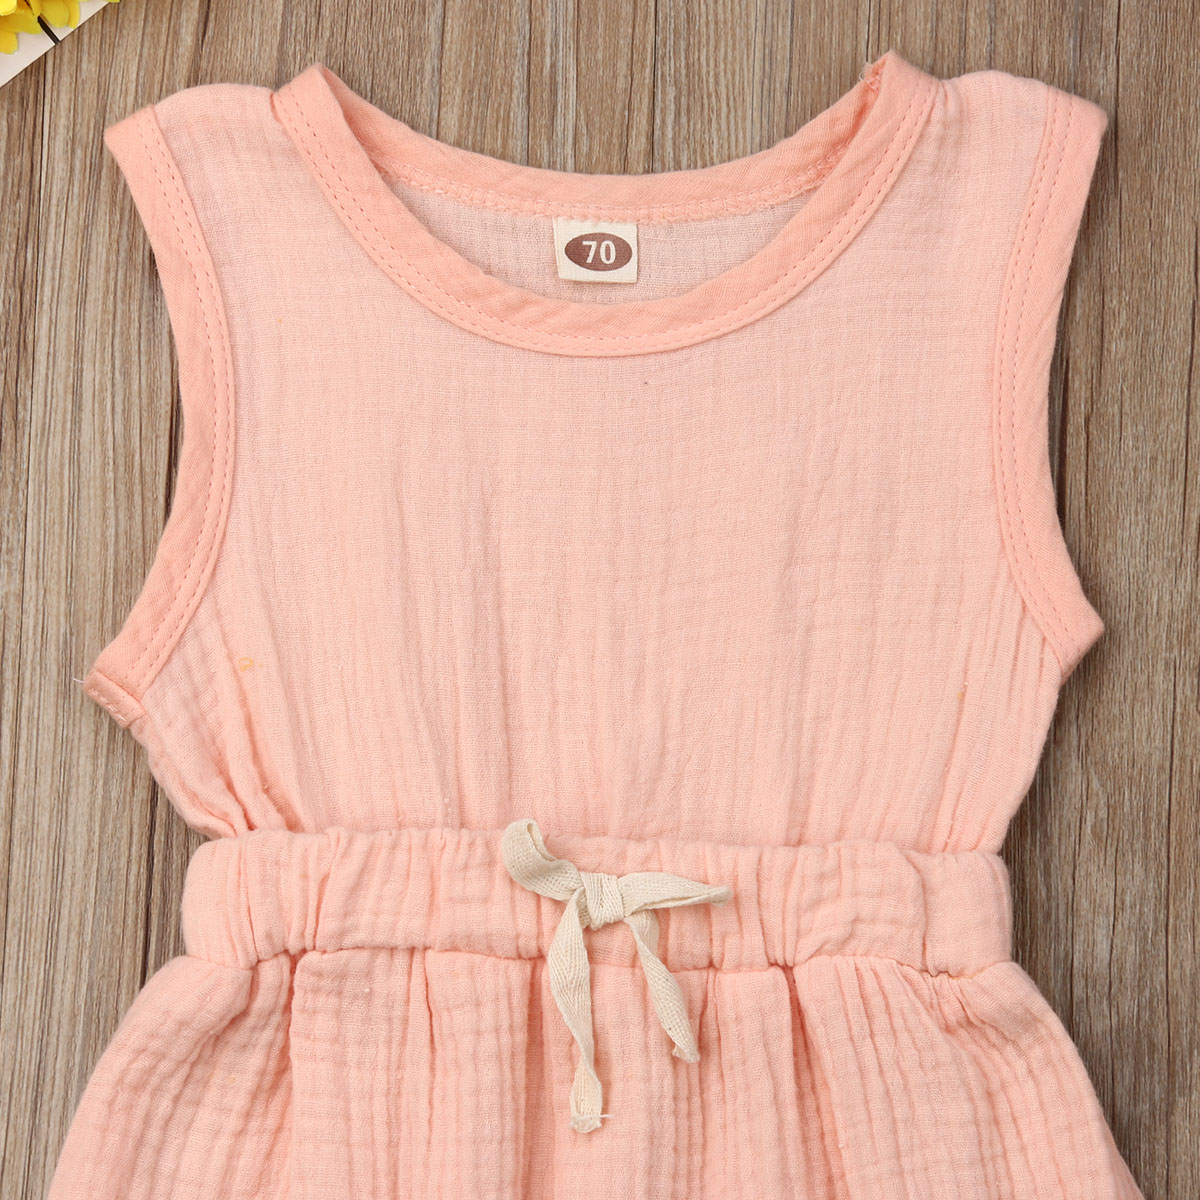 0 18M Newborn Toddler Baby Girl Ruched Romper Cotton Sleeveless Bowknot Lace Up Jumpsuit Casual Cute Baby Clothes Summer in Rompers from Mother Kids